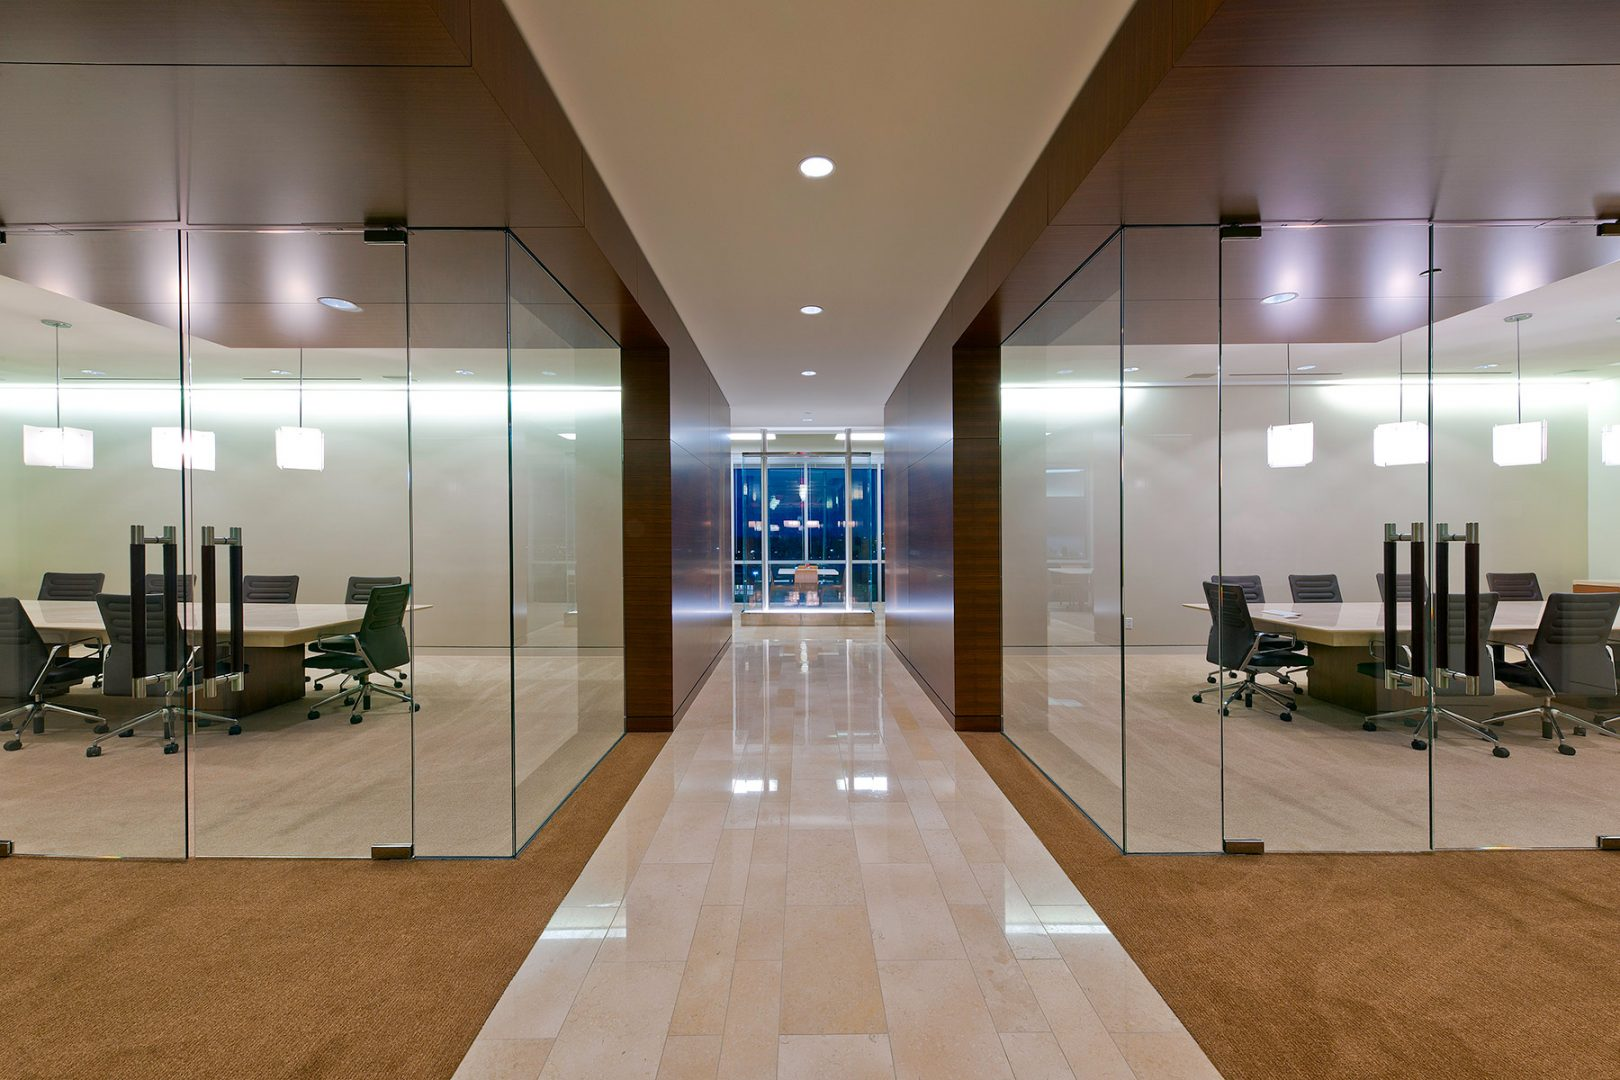 Workplace Office Interior Design BEUSA Energy The Woodlands Meeting Rooms Glass Walls Natural Light filtration